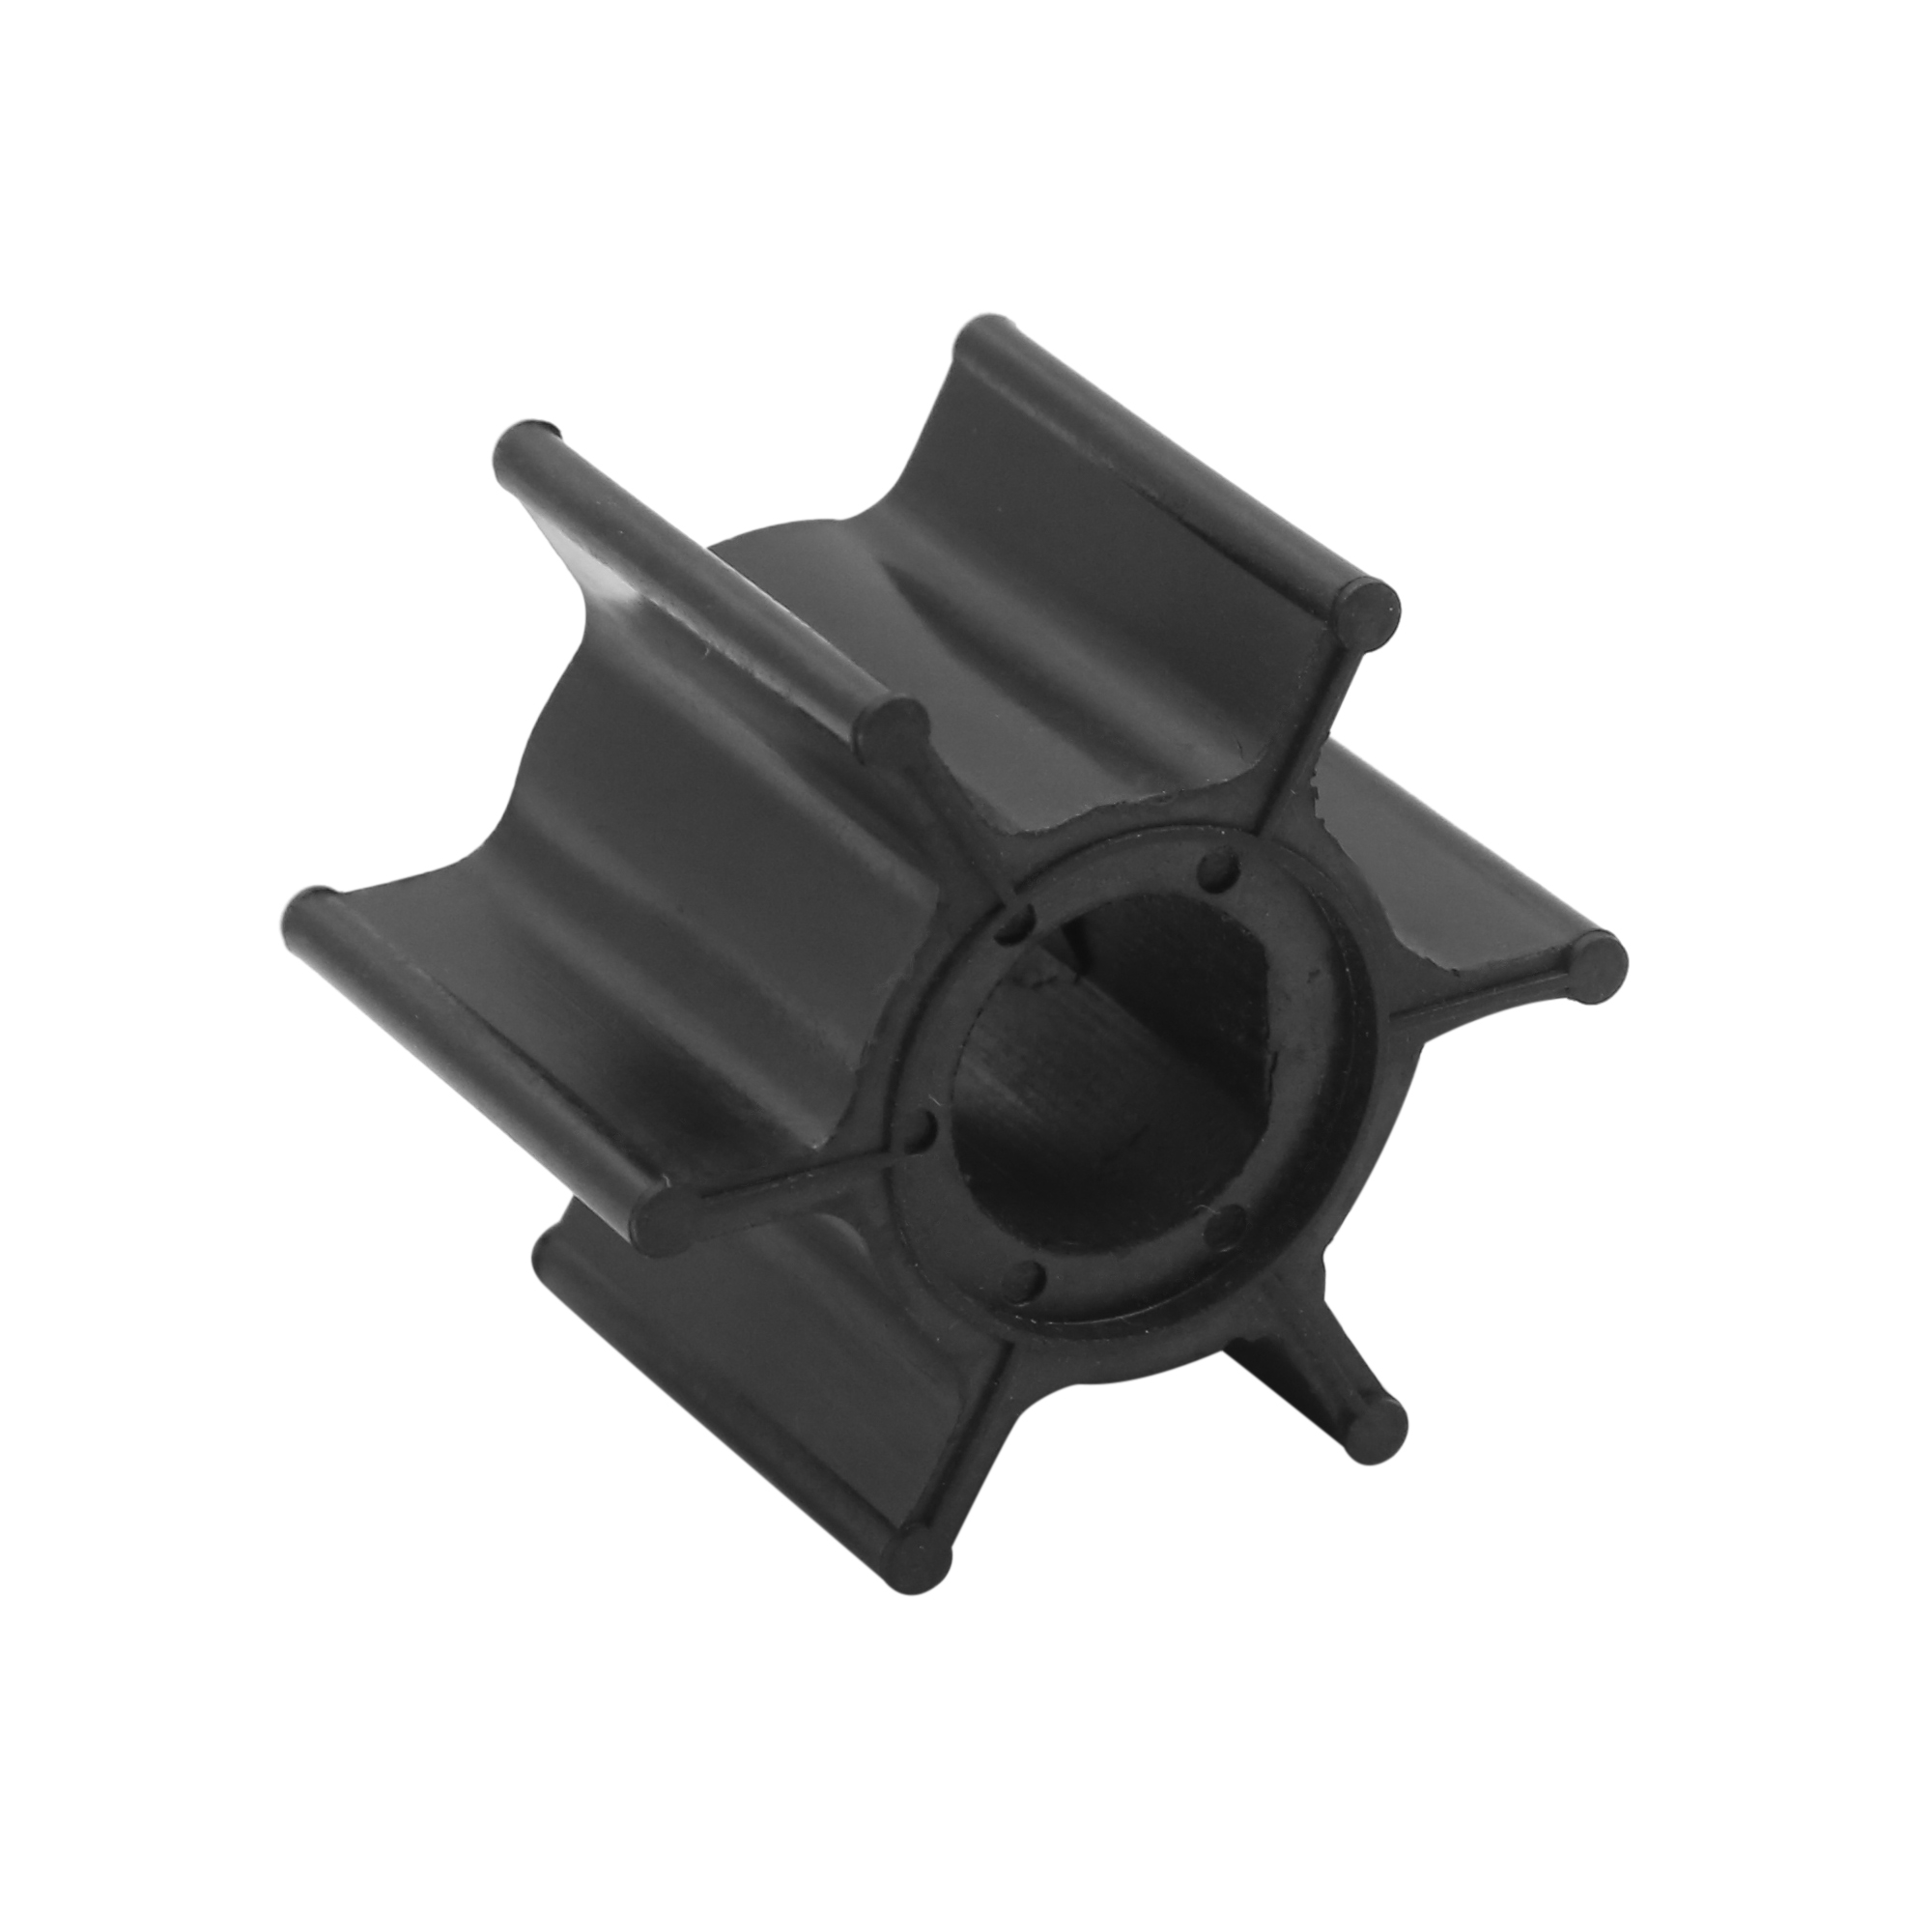 Boat Outboard Water Pump Impeller Replacement for Honda 9.9 15hp 19210-ZV4-013 - image 5 of 5